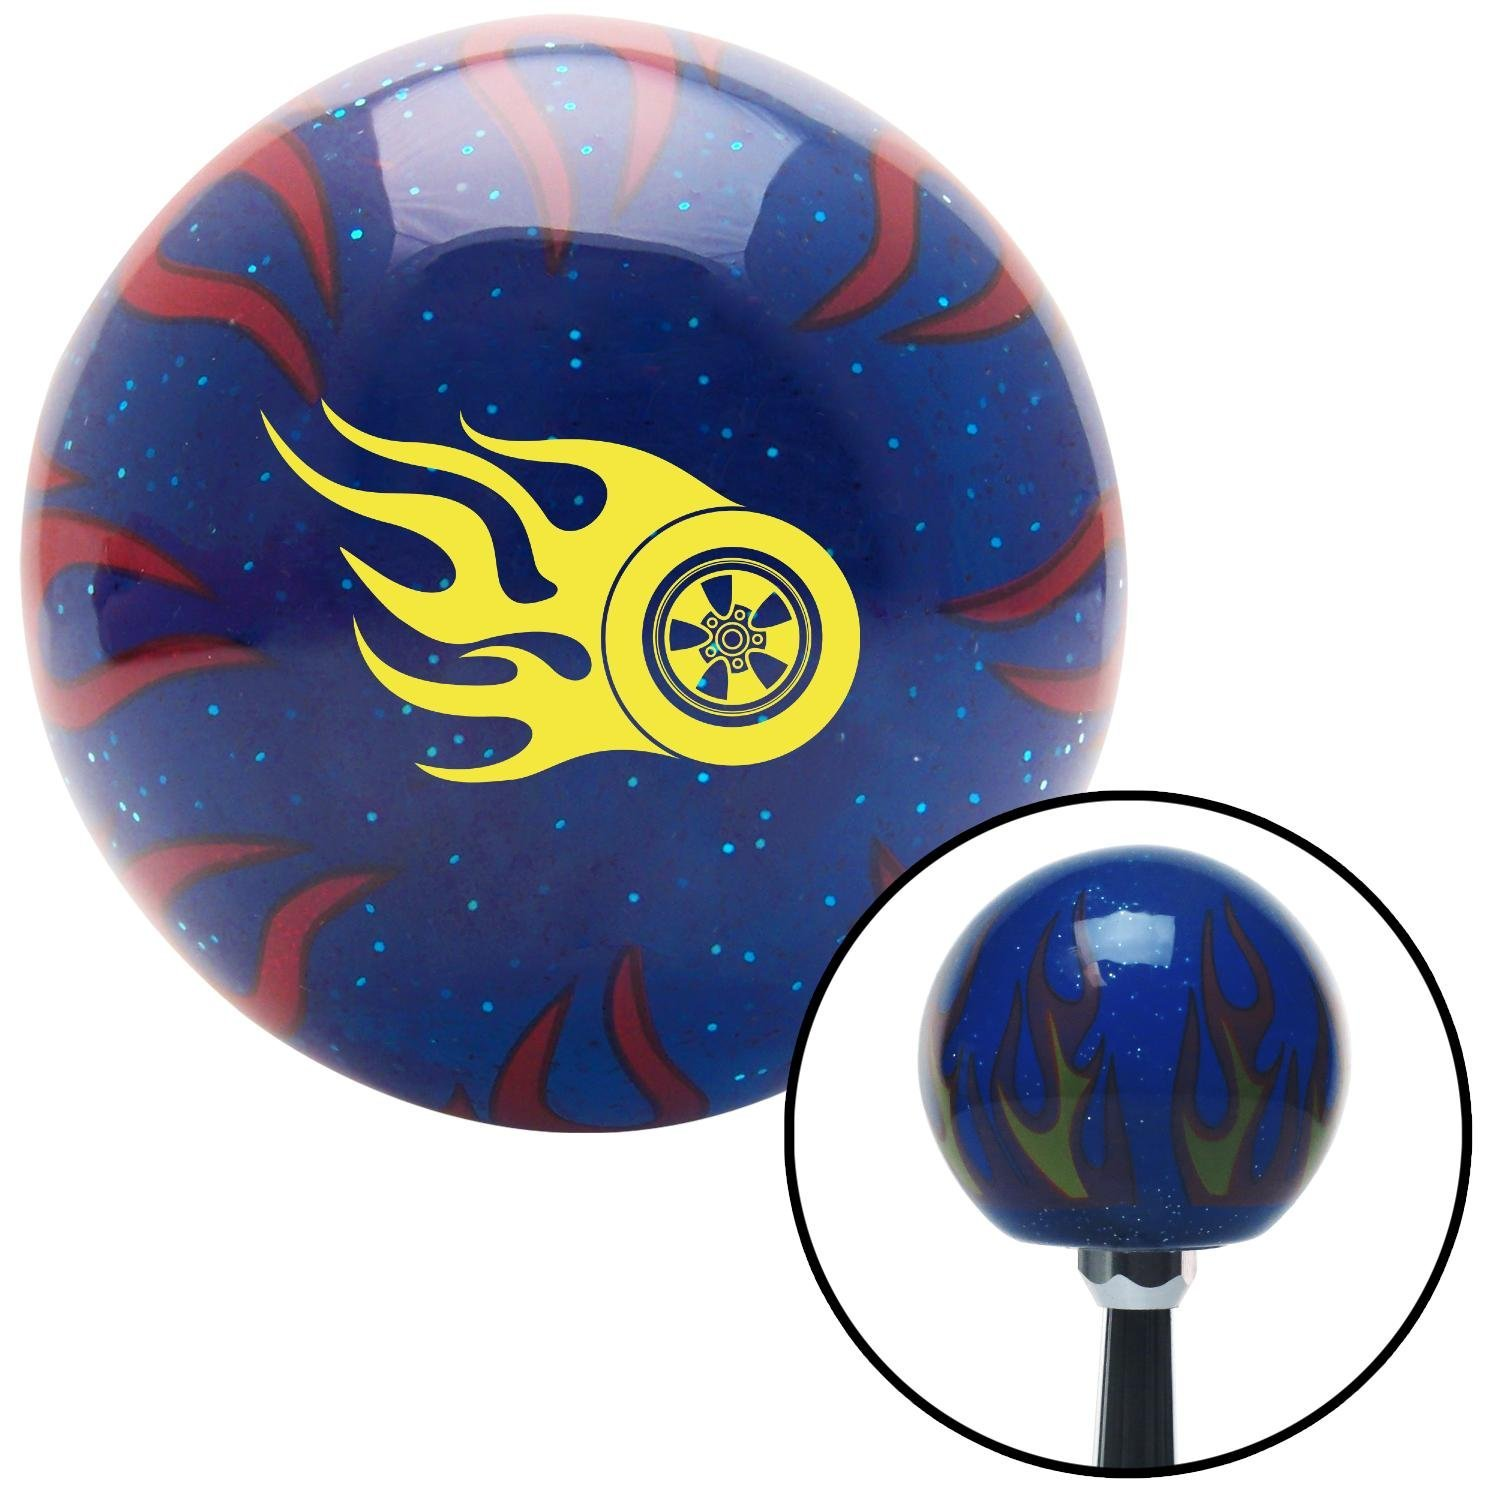 American Shifter 244263 Blue Flame Metal Flake Shift Knob with M16 x 1.5 Insert Yellow Wheel On Fire